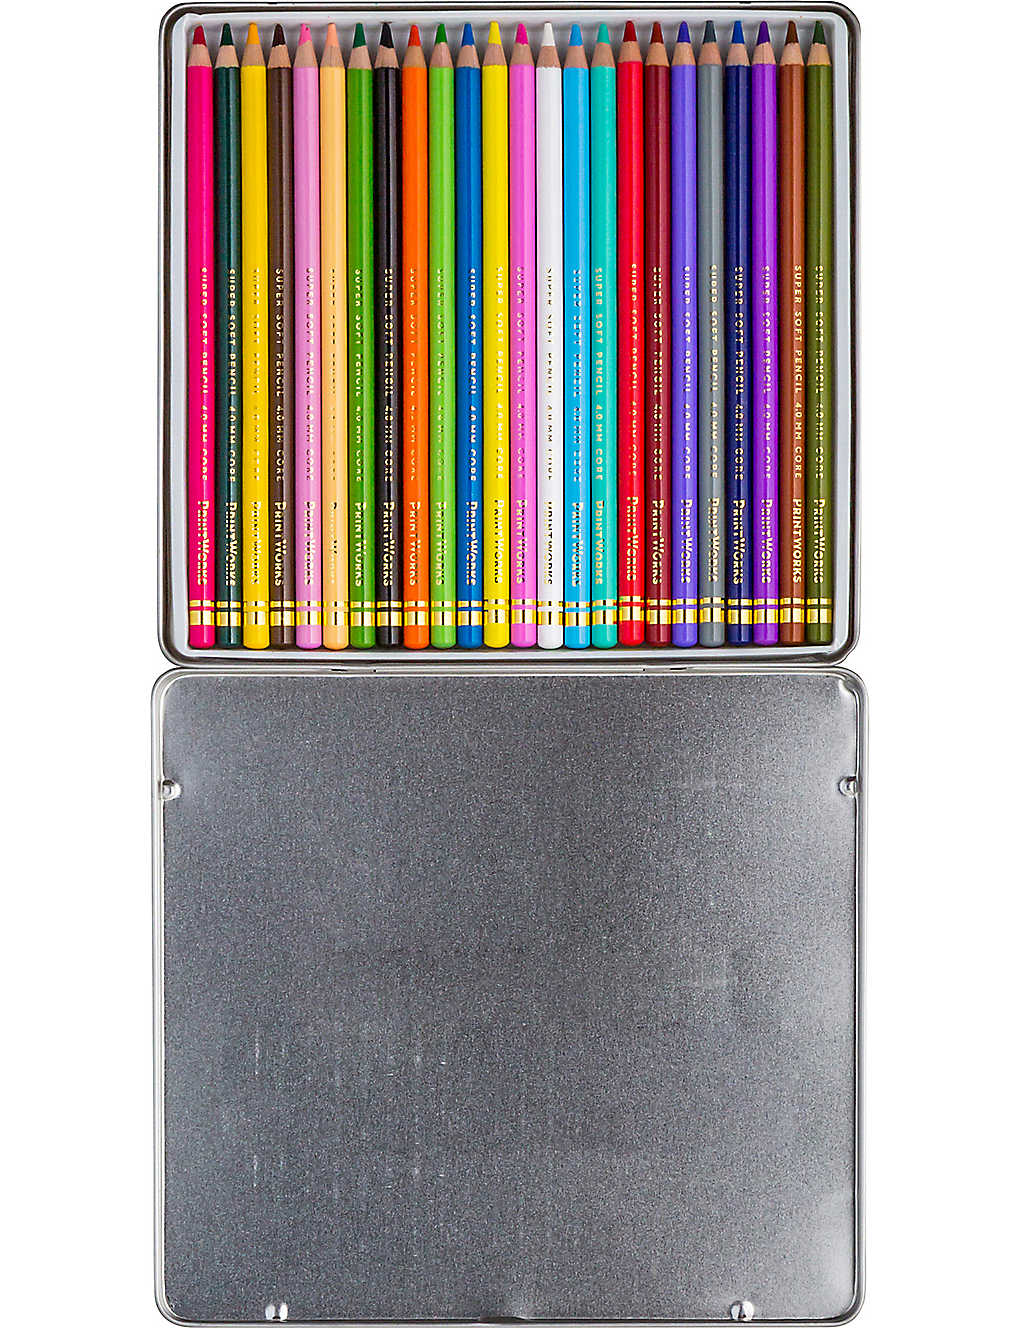 PRINT WORKS: 24 colouring pencils set